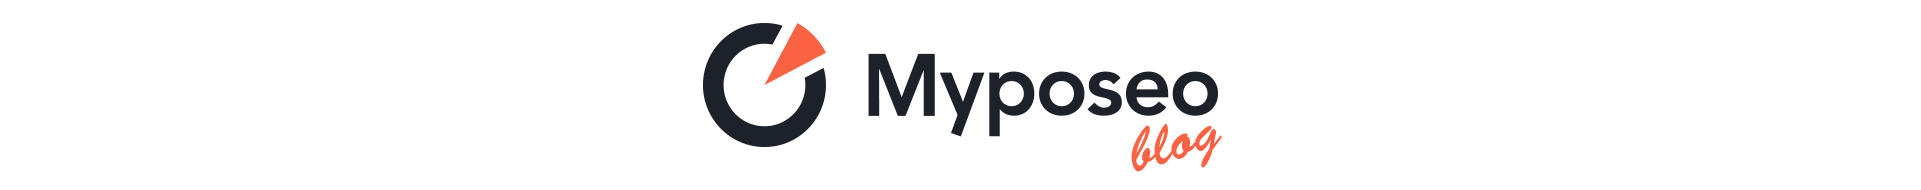 Myposeo blog